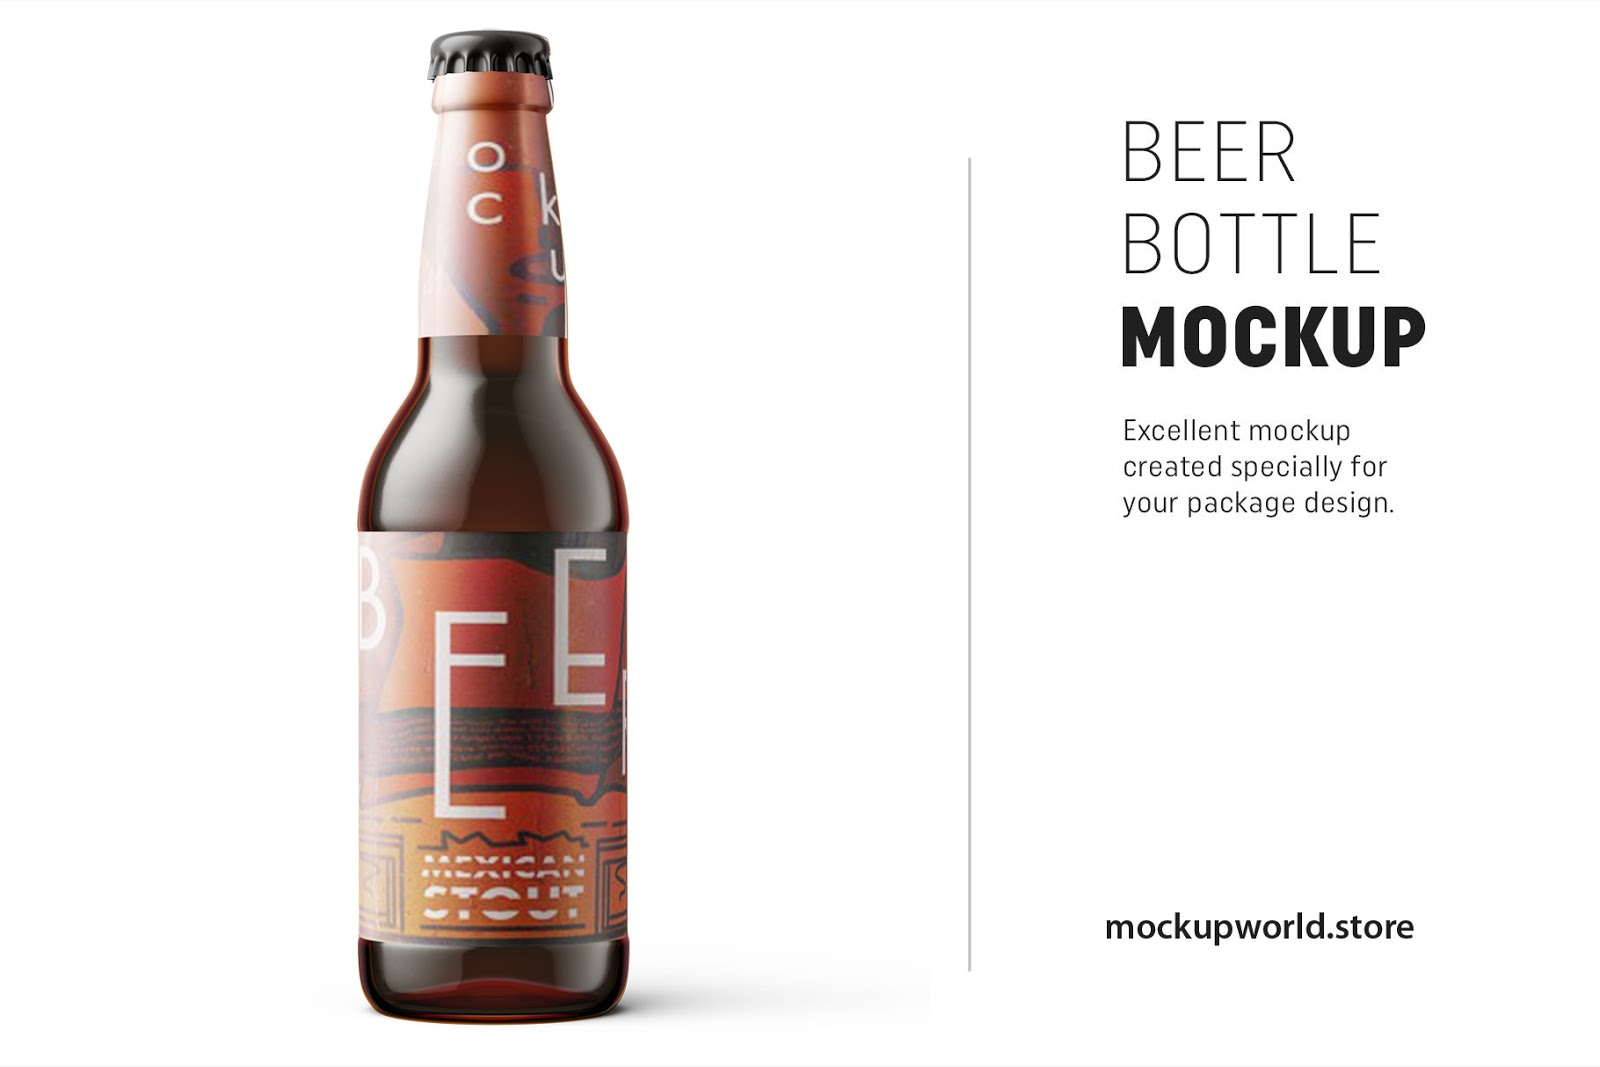 Beer Bottle Mockup Freebie